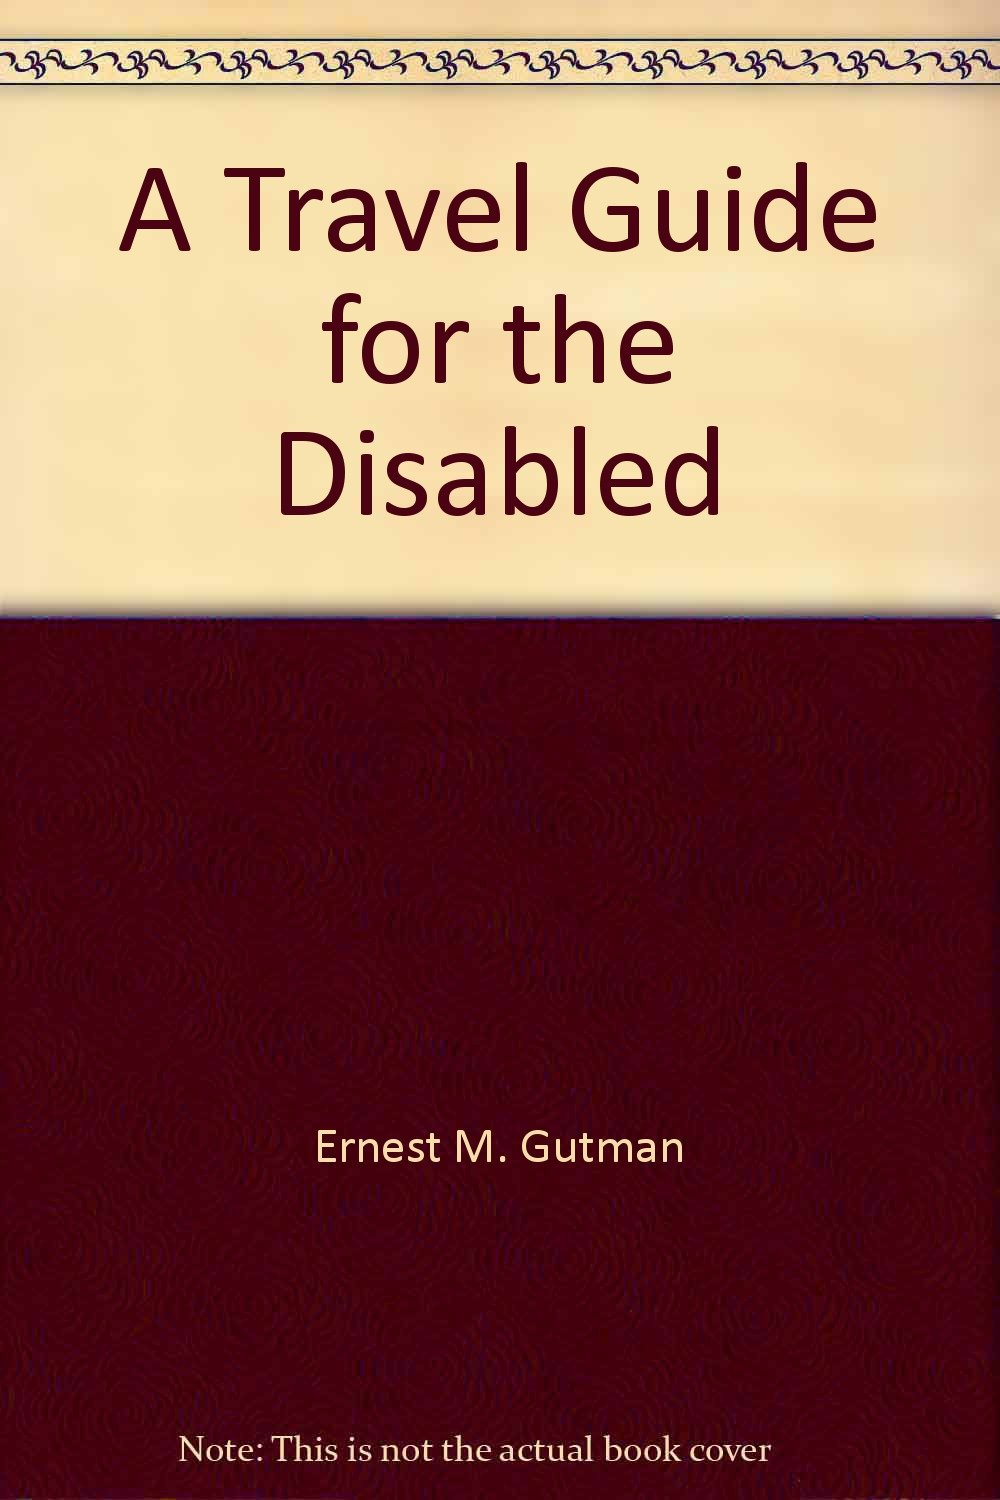 A Travel Guide for the Disabled